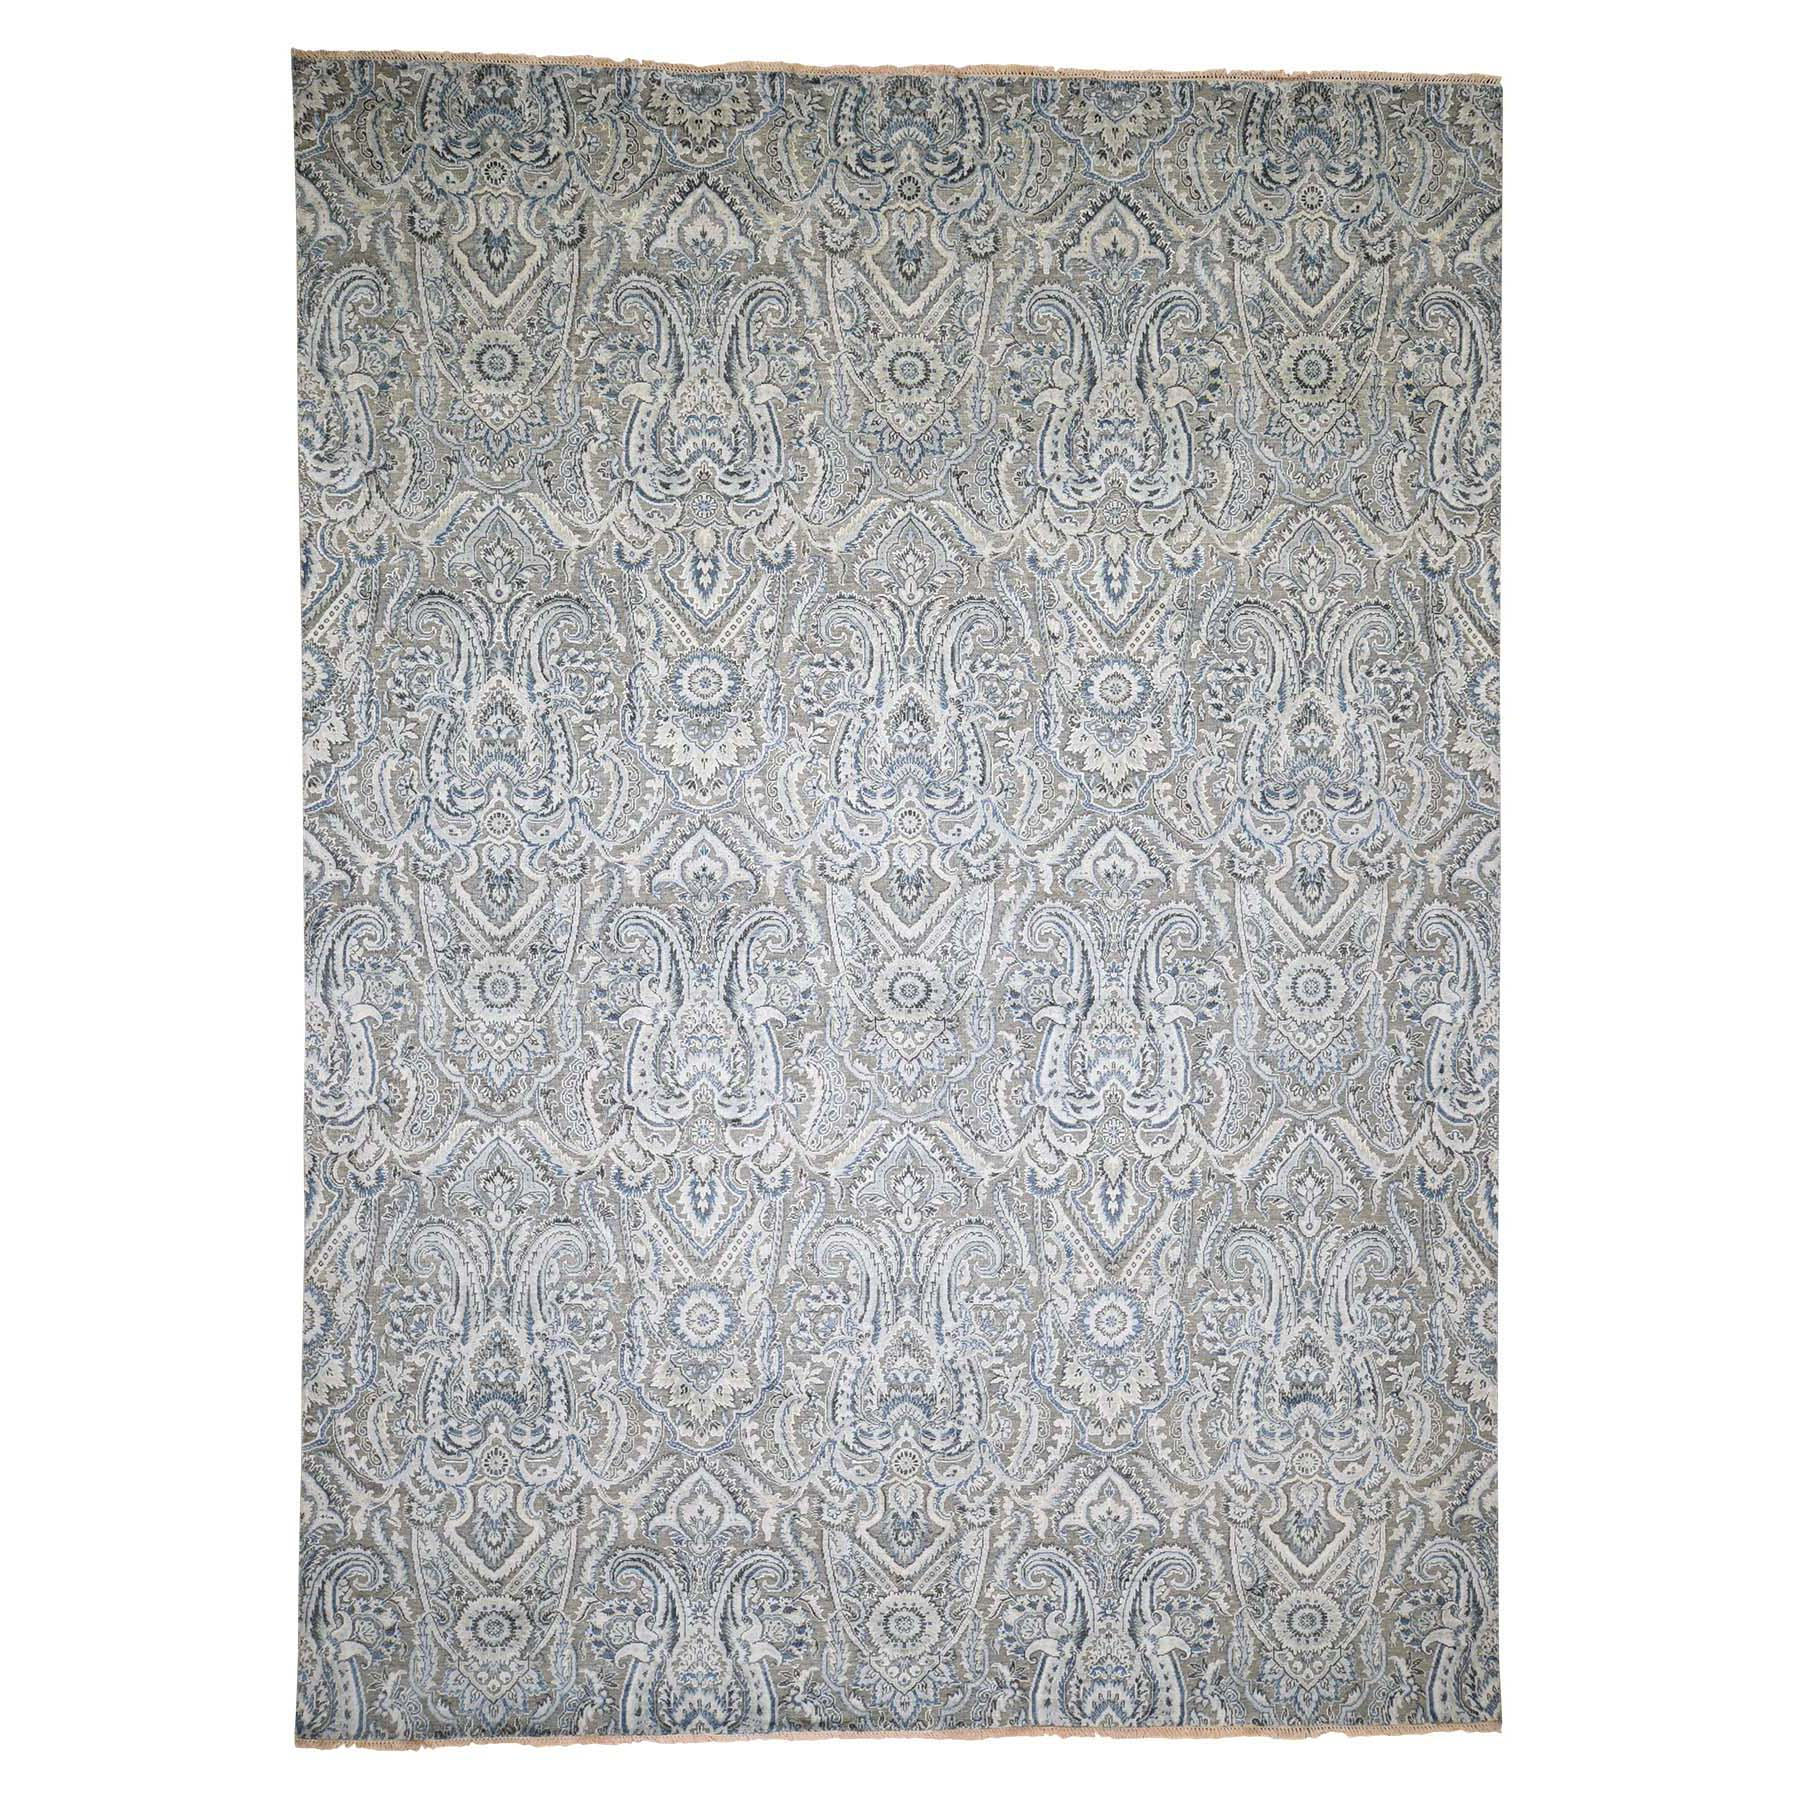 "9'X12'1"" Pure Silk Textured Wool Paisley Flower Design Hand-Knotted Rug moadad8c"